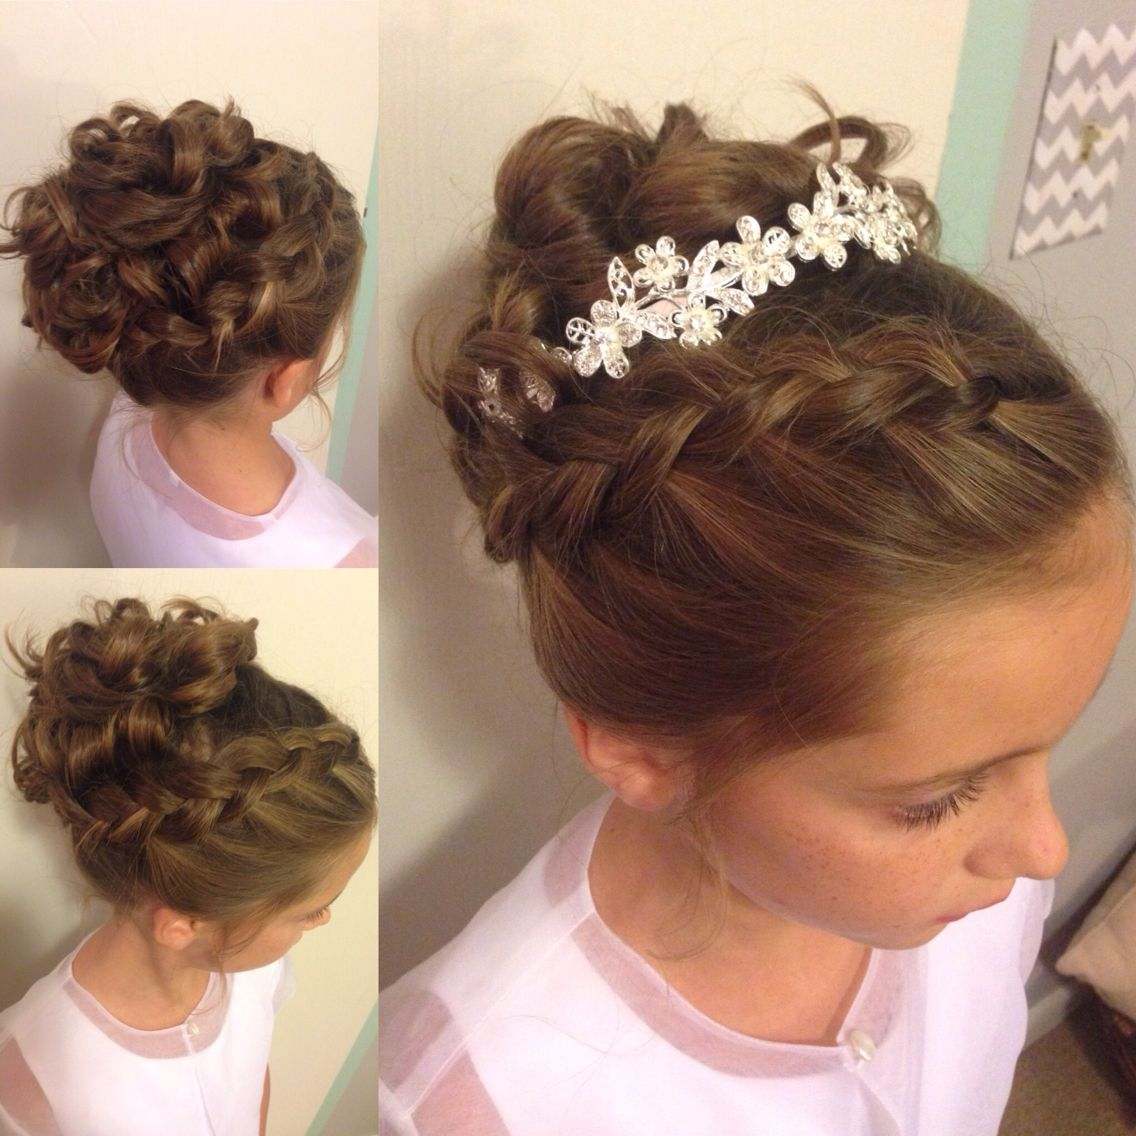 Wedding Hair For Girls Fashion Long Hairstyles Cute Wedding Hairstyles For Ki Wedding Hairstyles For Girls Little Girl Wedding Hairstyles Girls Updo Hairstyles